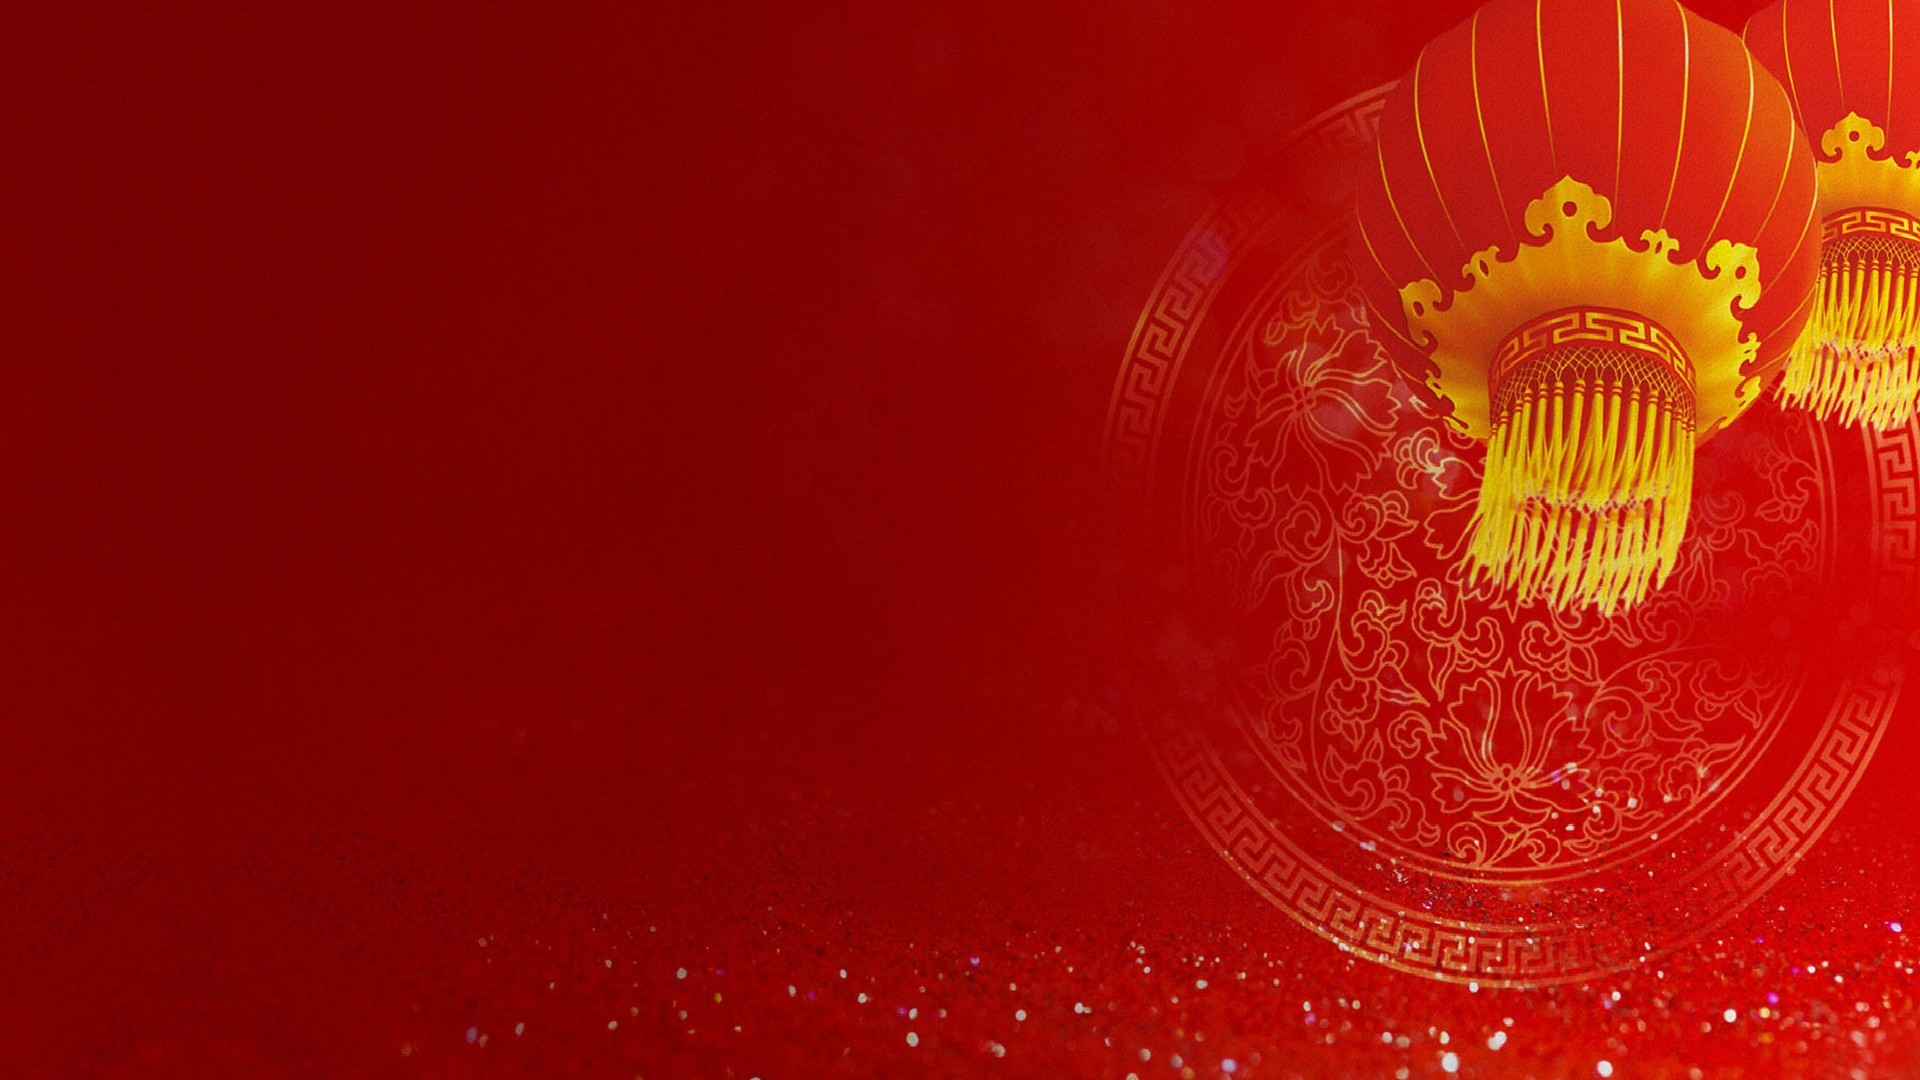 Happy Chinese New Year 2015 Wallpaper Wide 13215: Wallpaper, High Definition